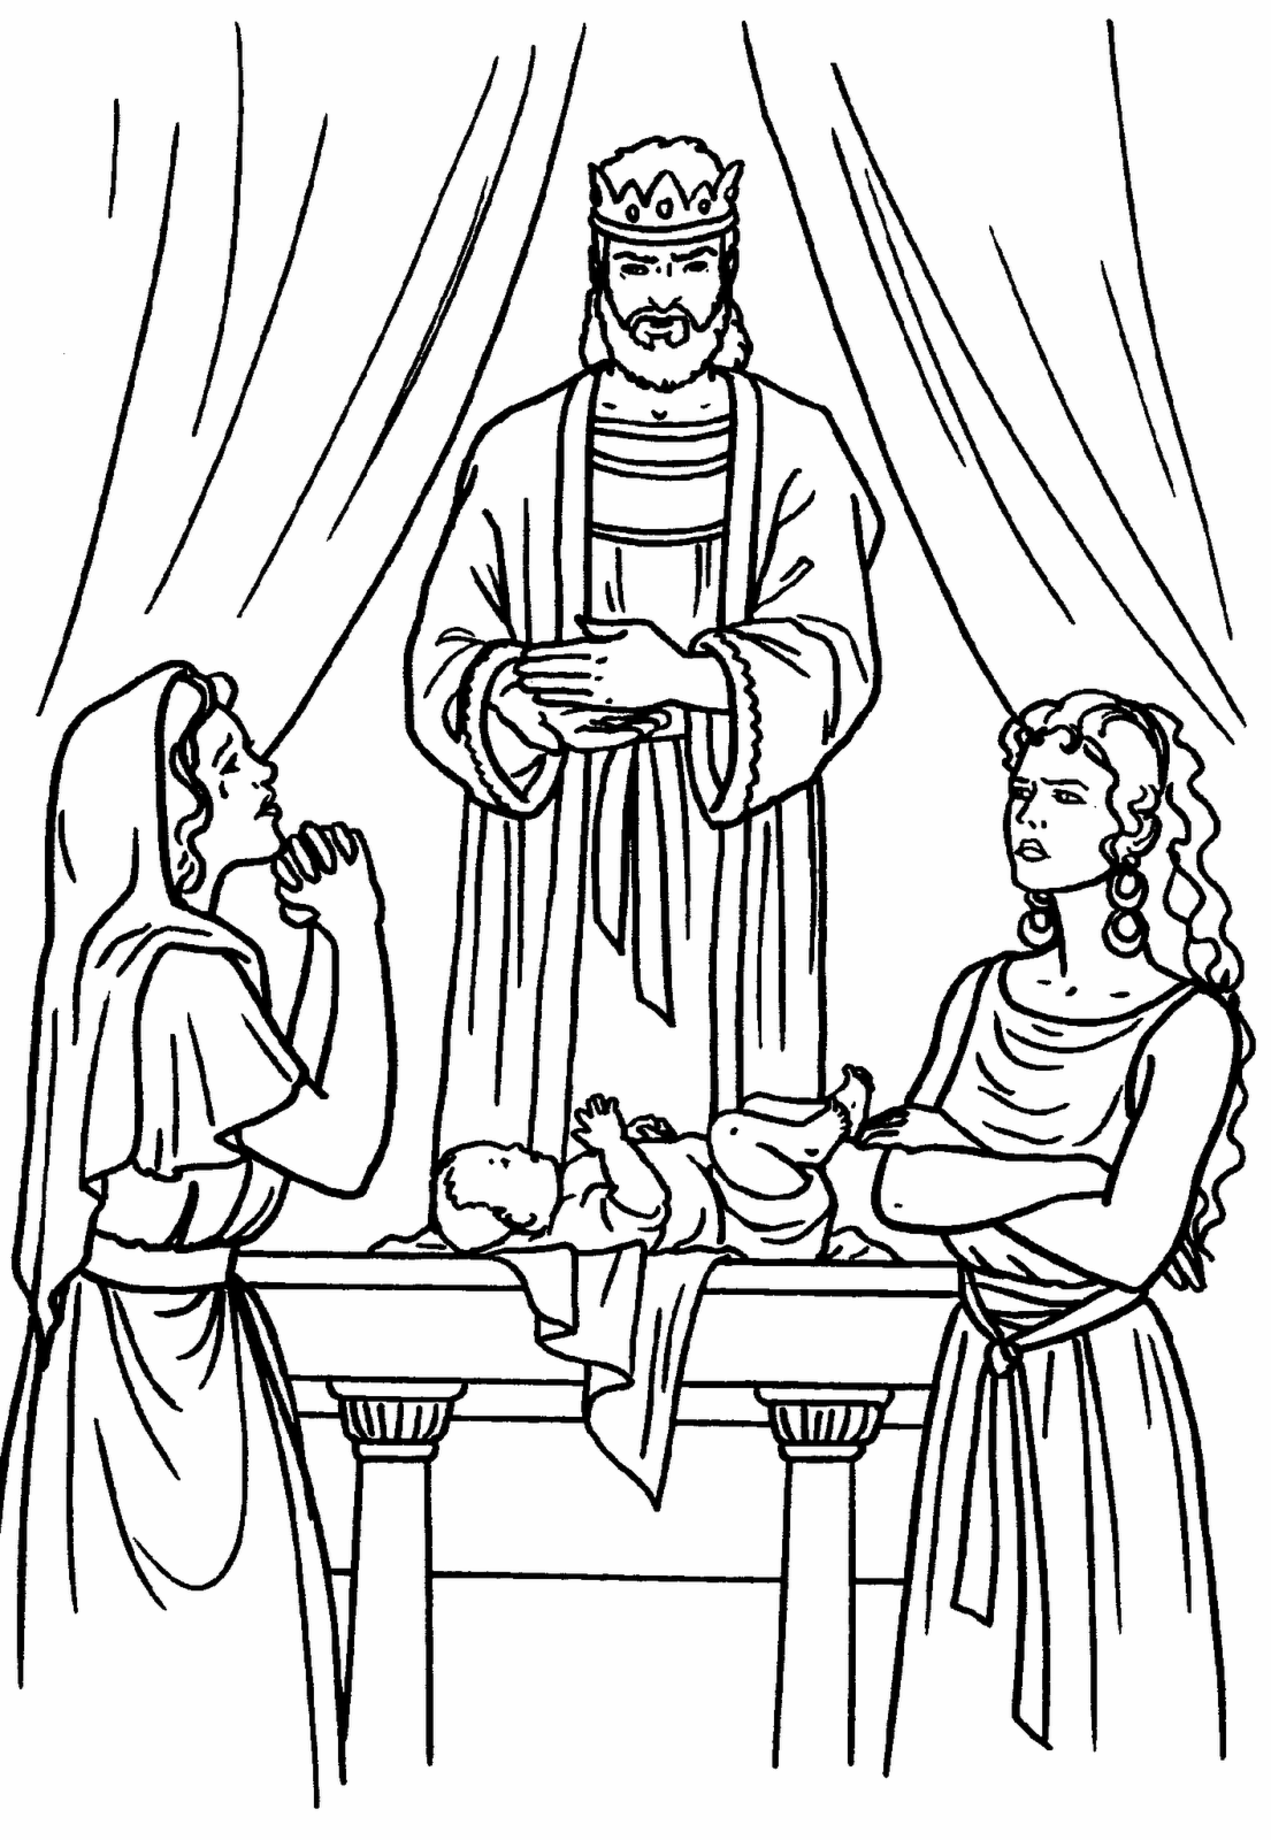 free bible coloring pages bible printables coloring pages for sunday school coloring free pages bible